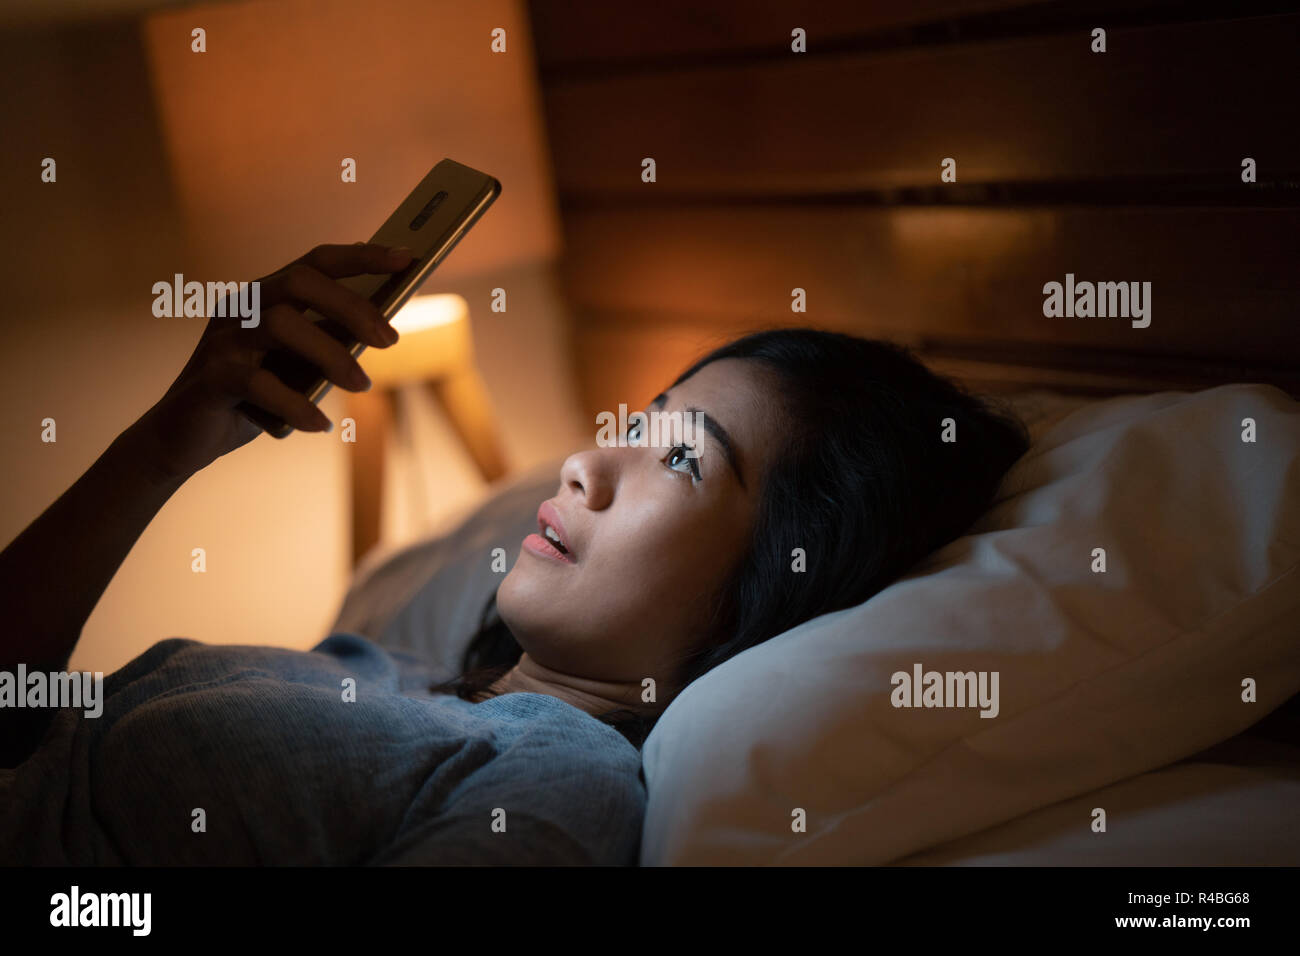 woman with mobile phone at home - Stock Image